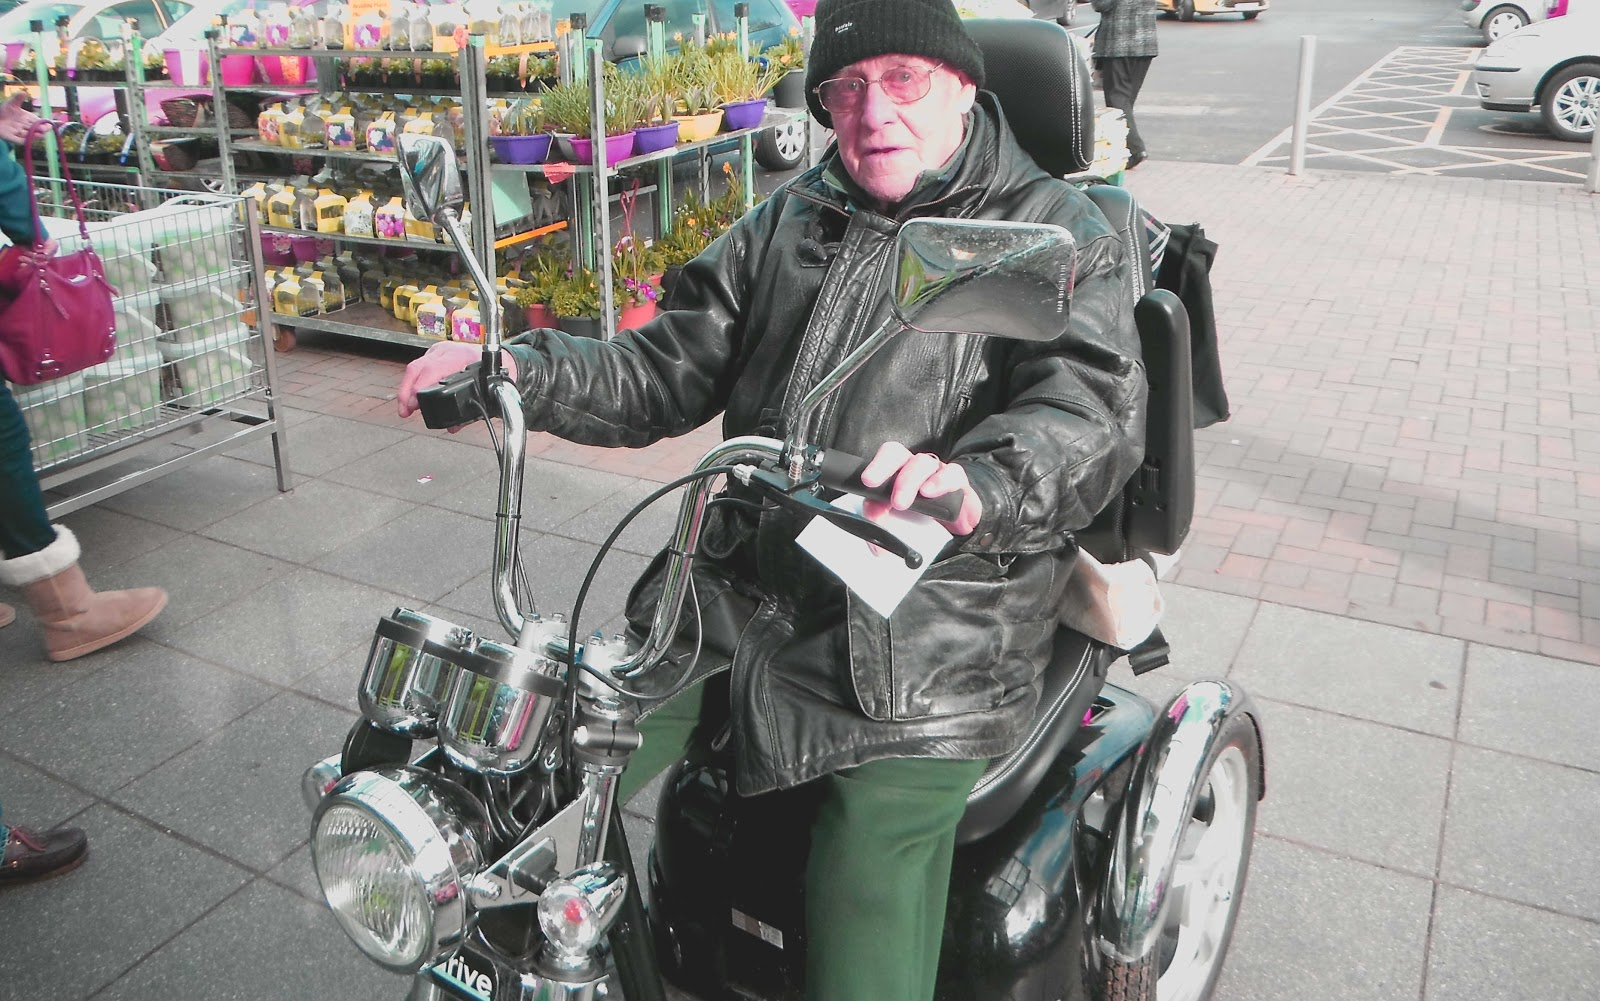 Roy Cox on a limited-edition 'Drive' scooter